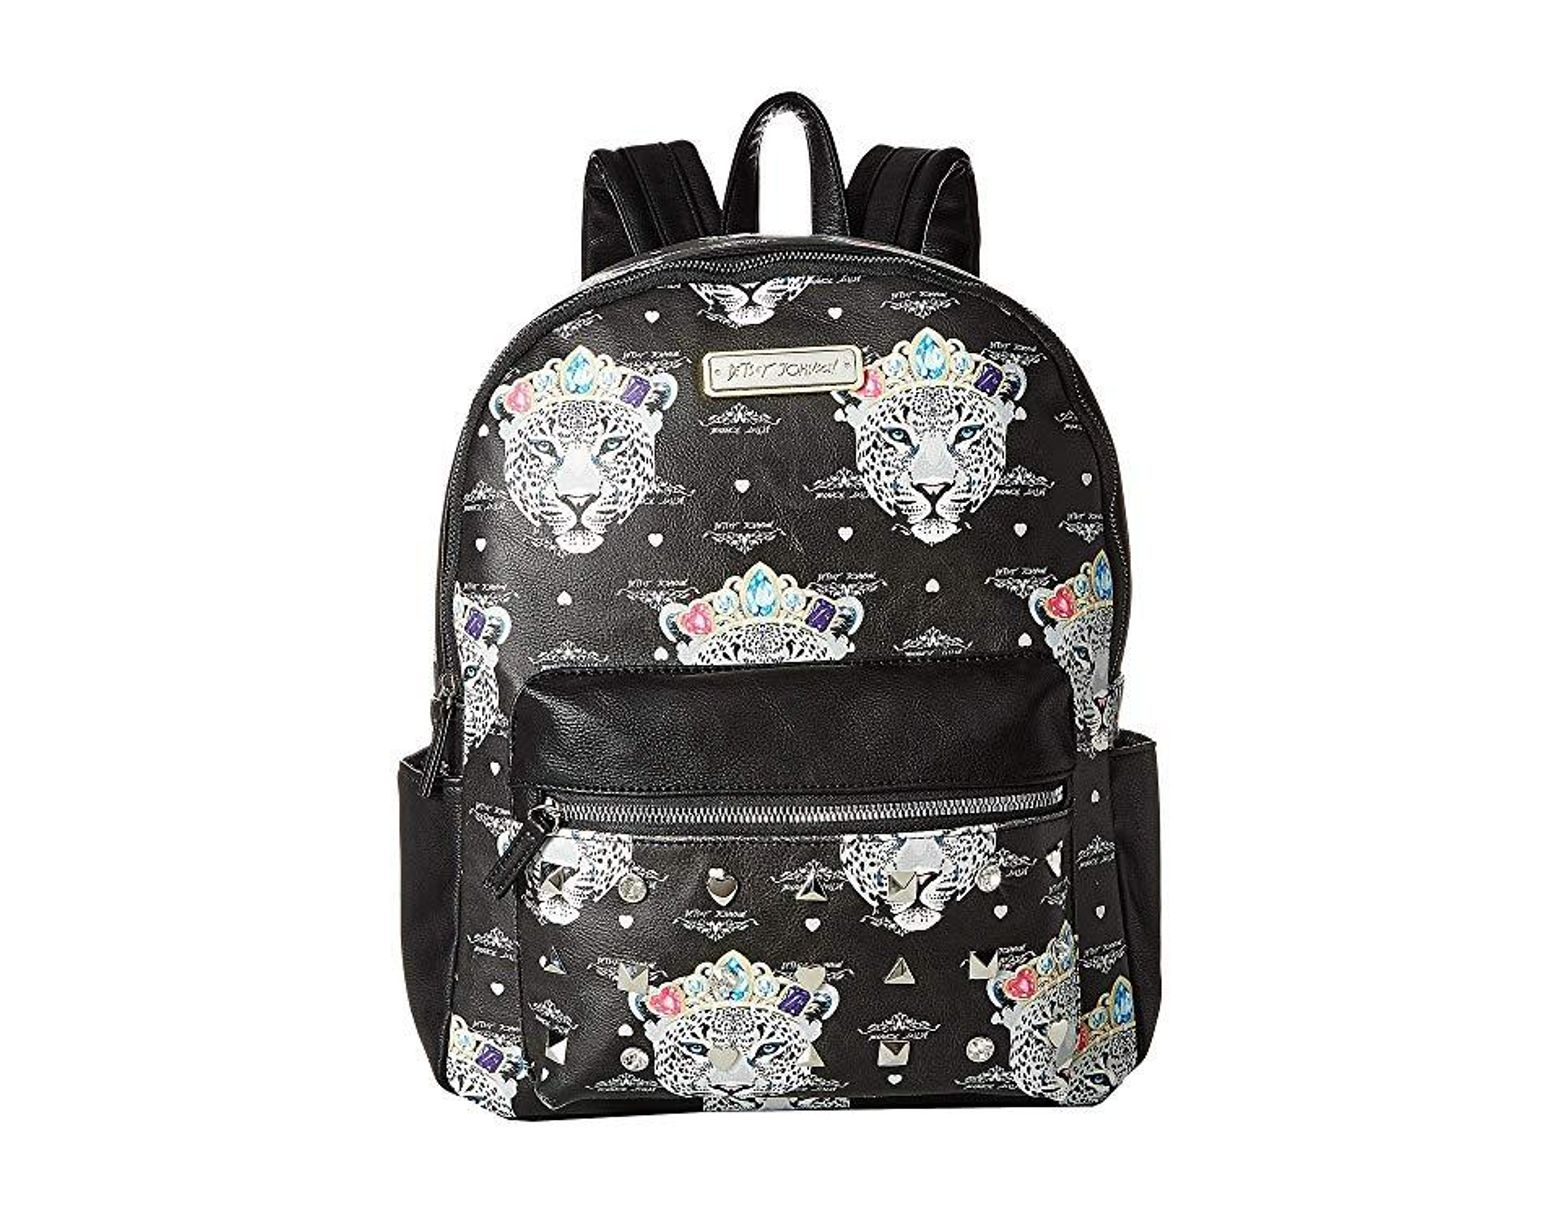 90444ab9f9d1 Betsey Johnson Snow Queen Of The Jungle Print Backpack (black/multi) Backpack  Bags in Black - Lyst